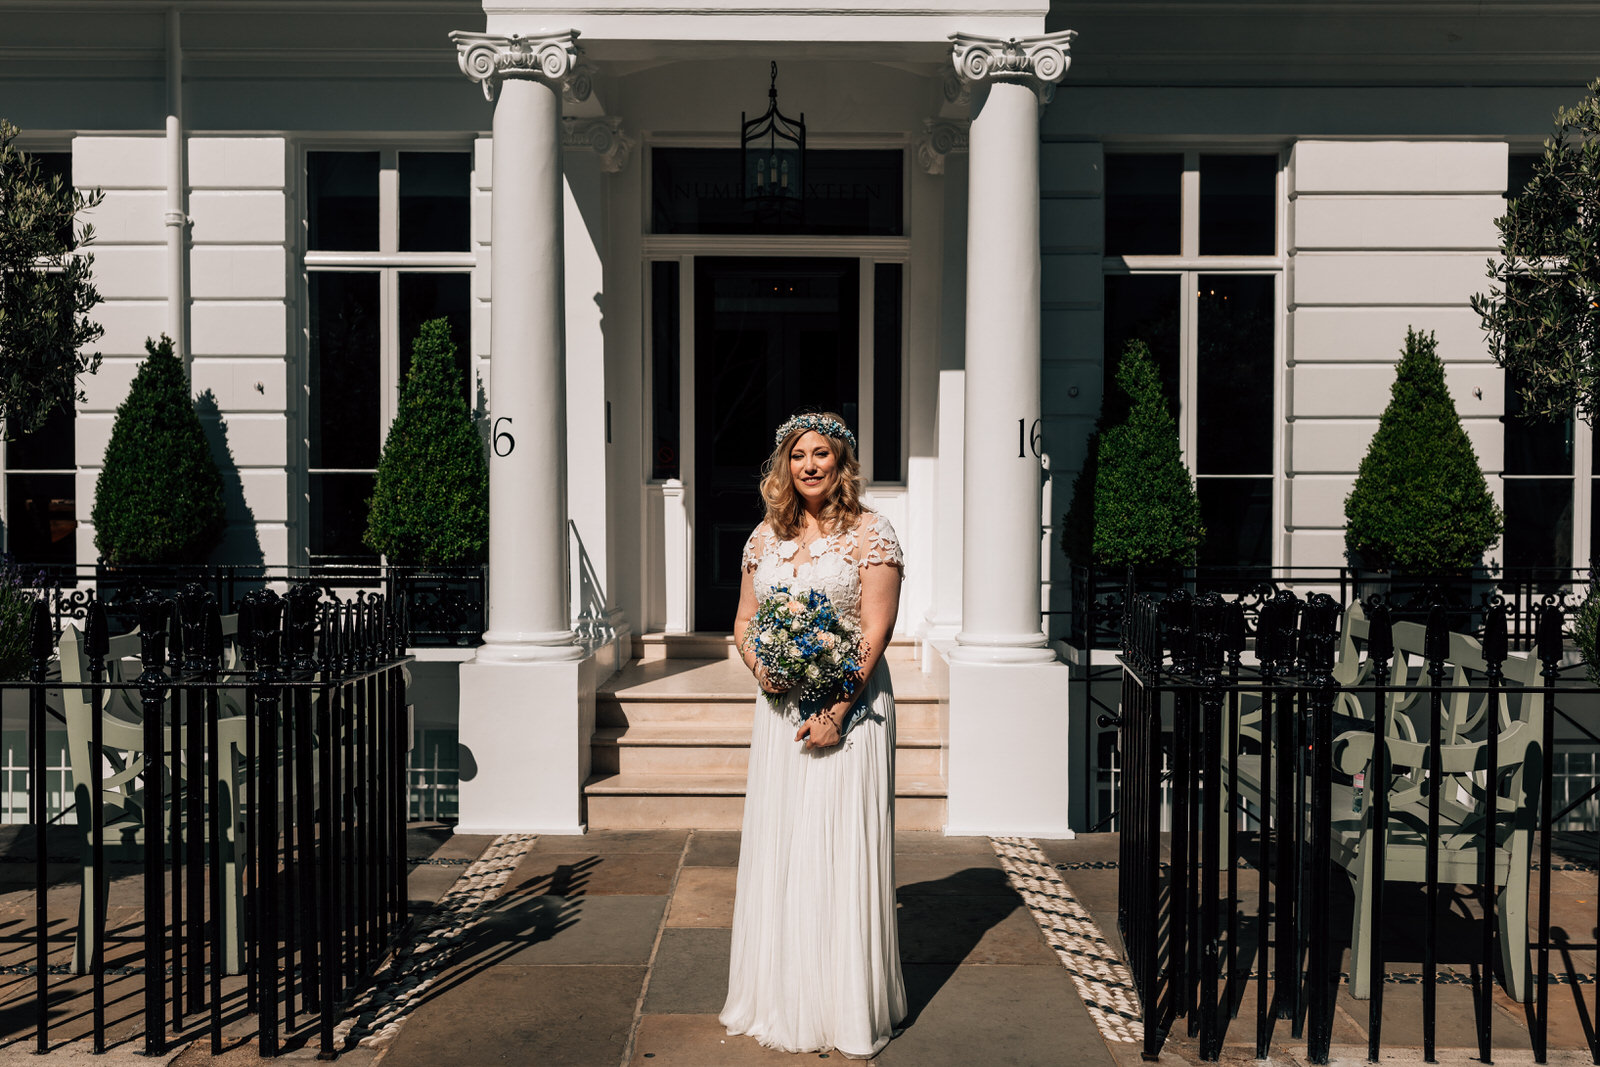 Kensington Wedding Photographer